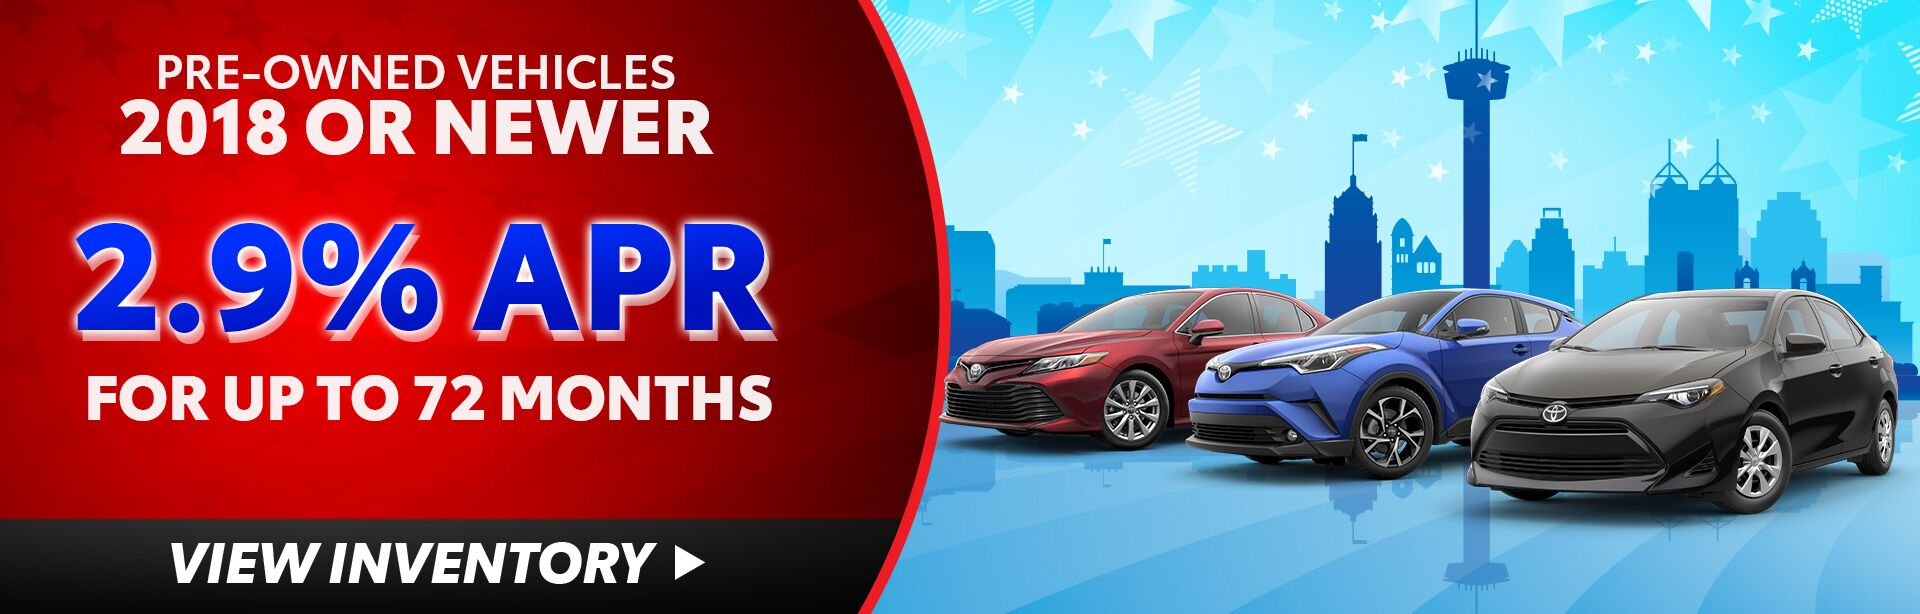 As Low as 2.9% APR for Up to 72 Months on Used Vehicles 2018 or Newer!